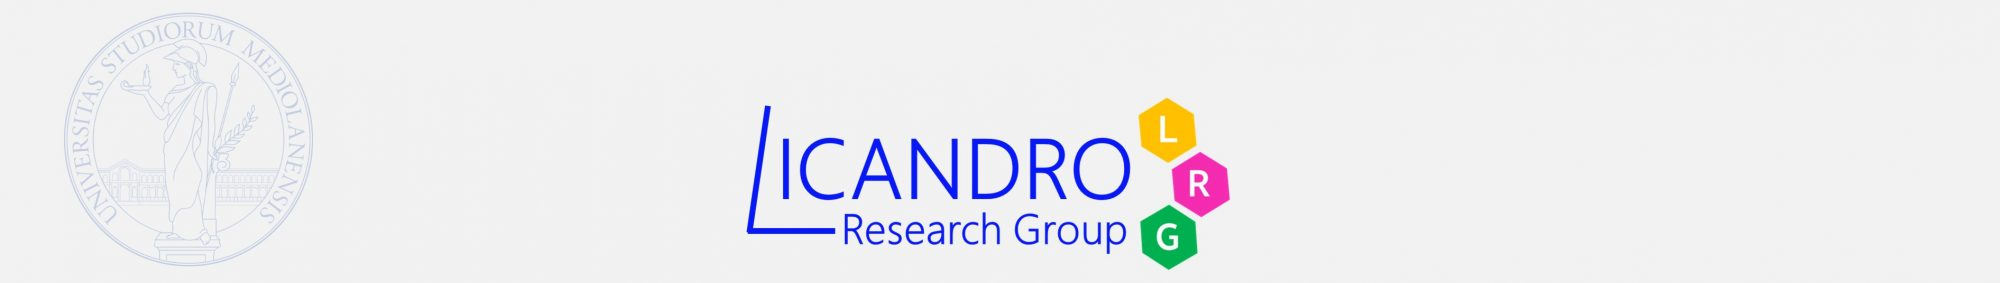 Licandro Research Group